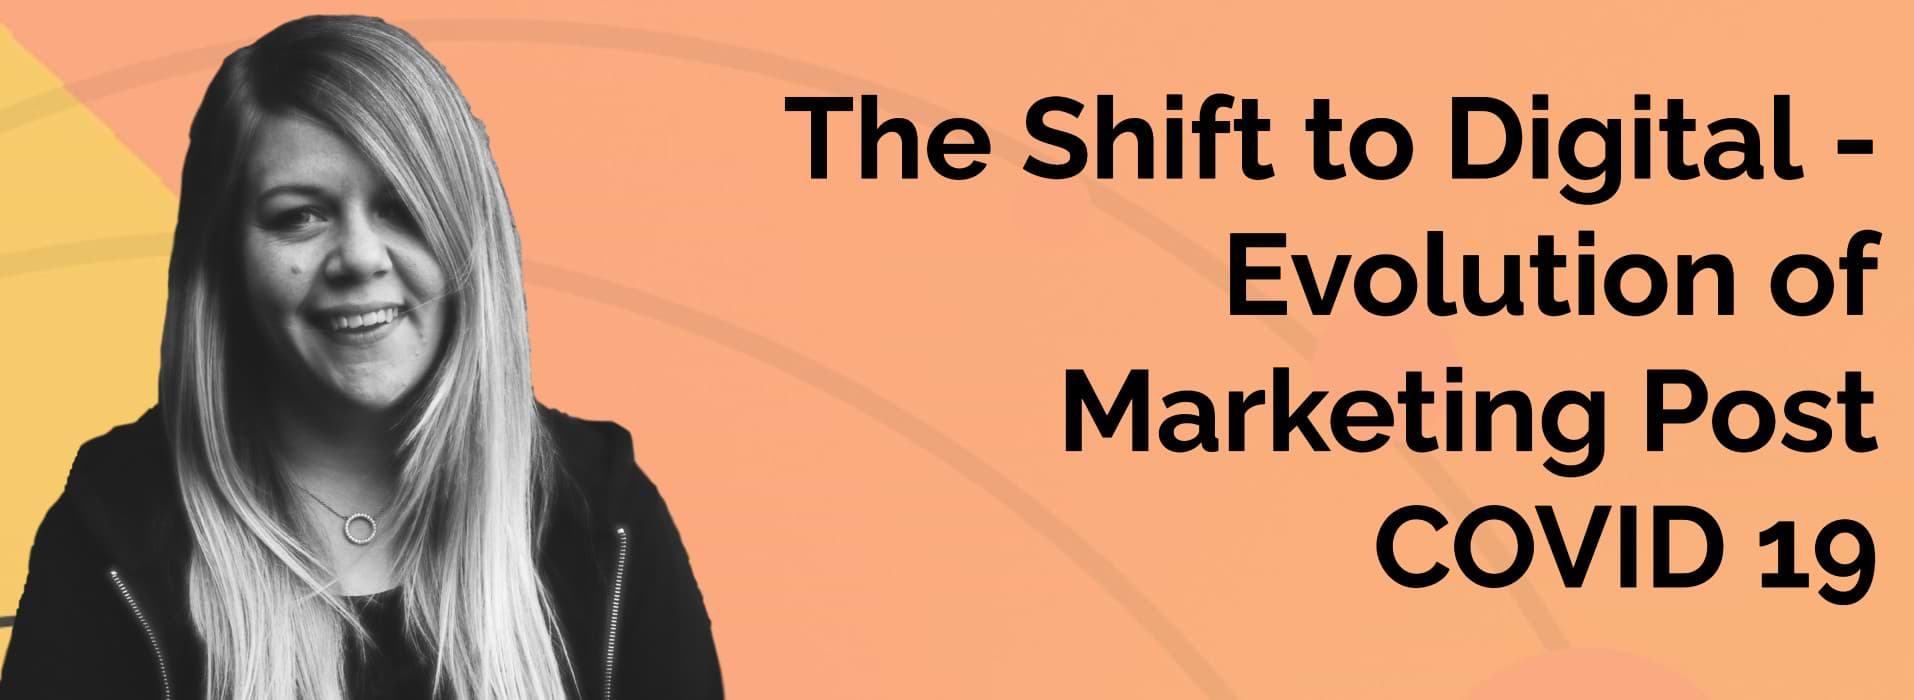 The Shift to Digital - Evolution of Marketing Post COVID 19